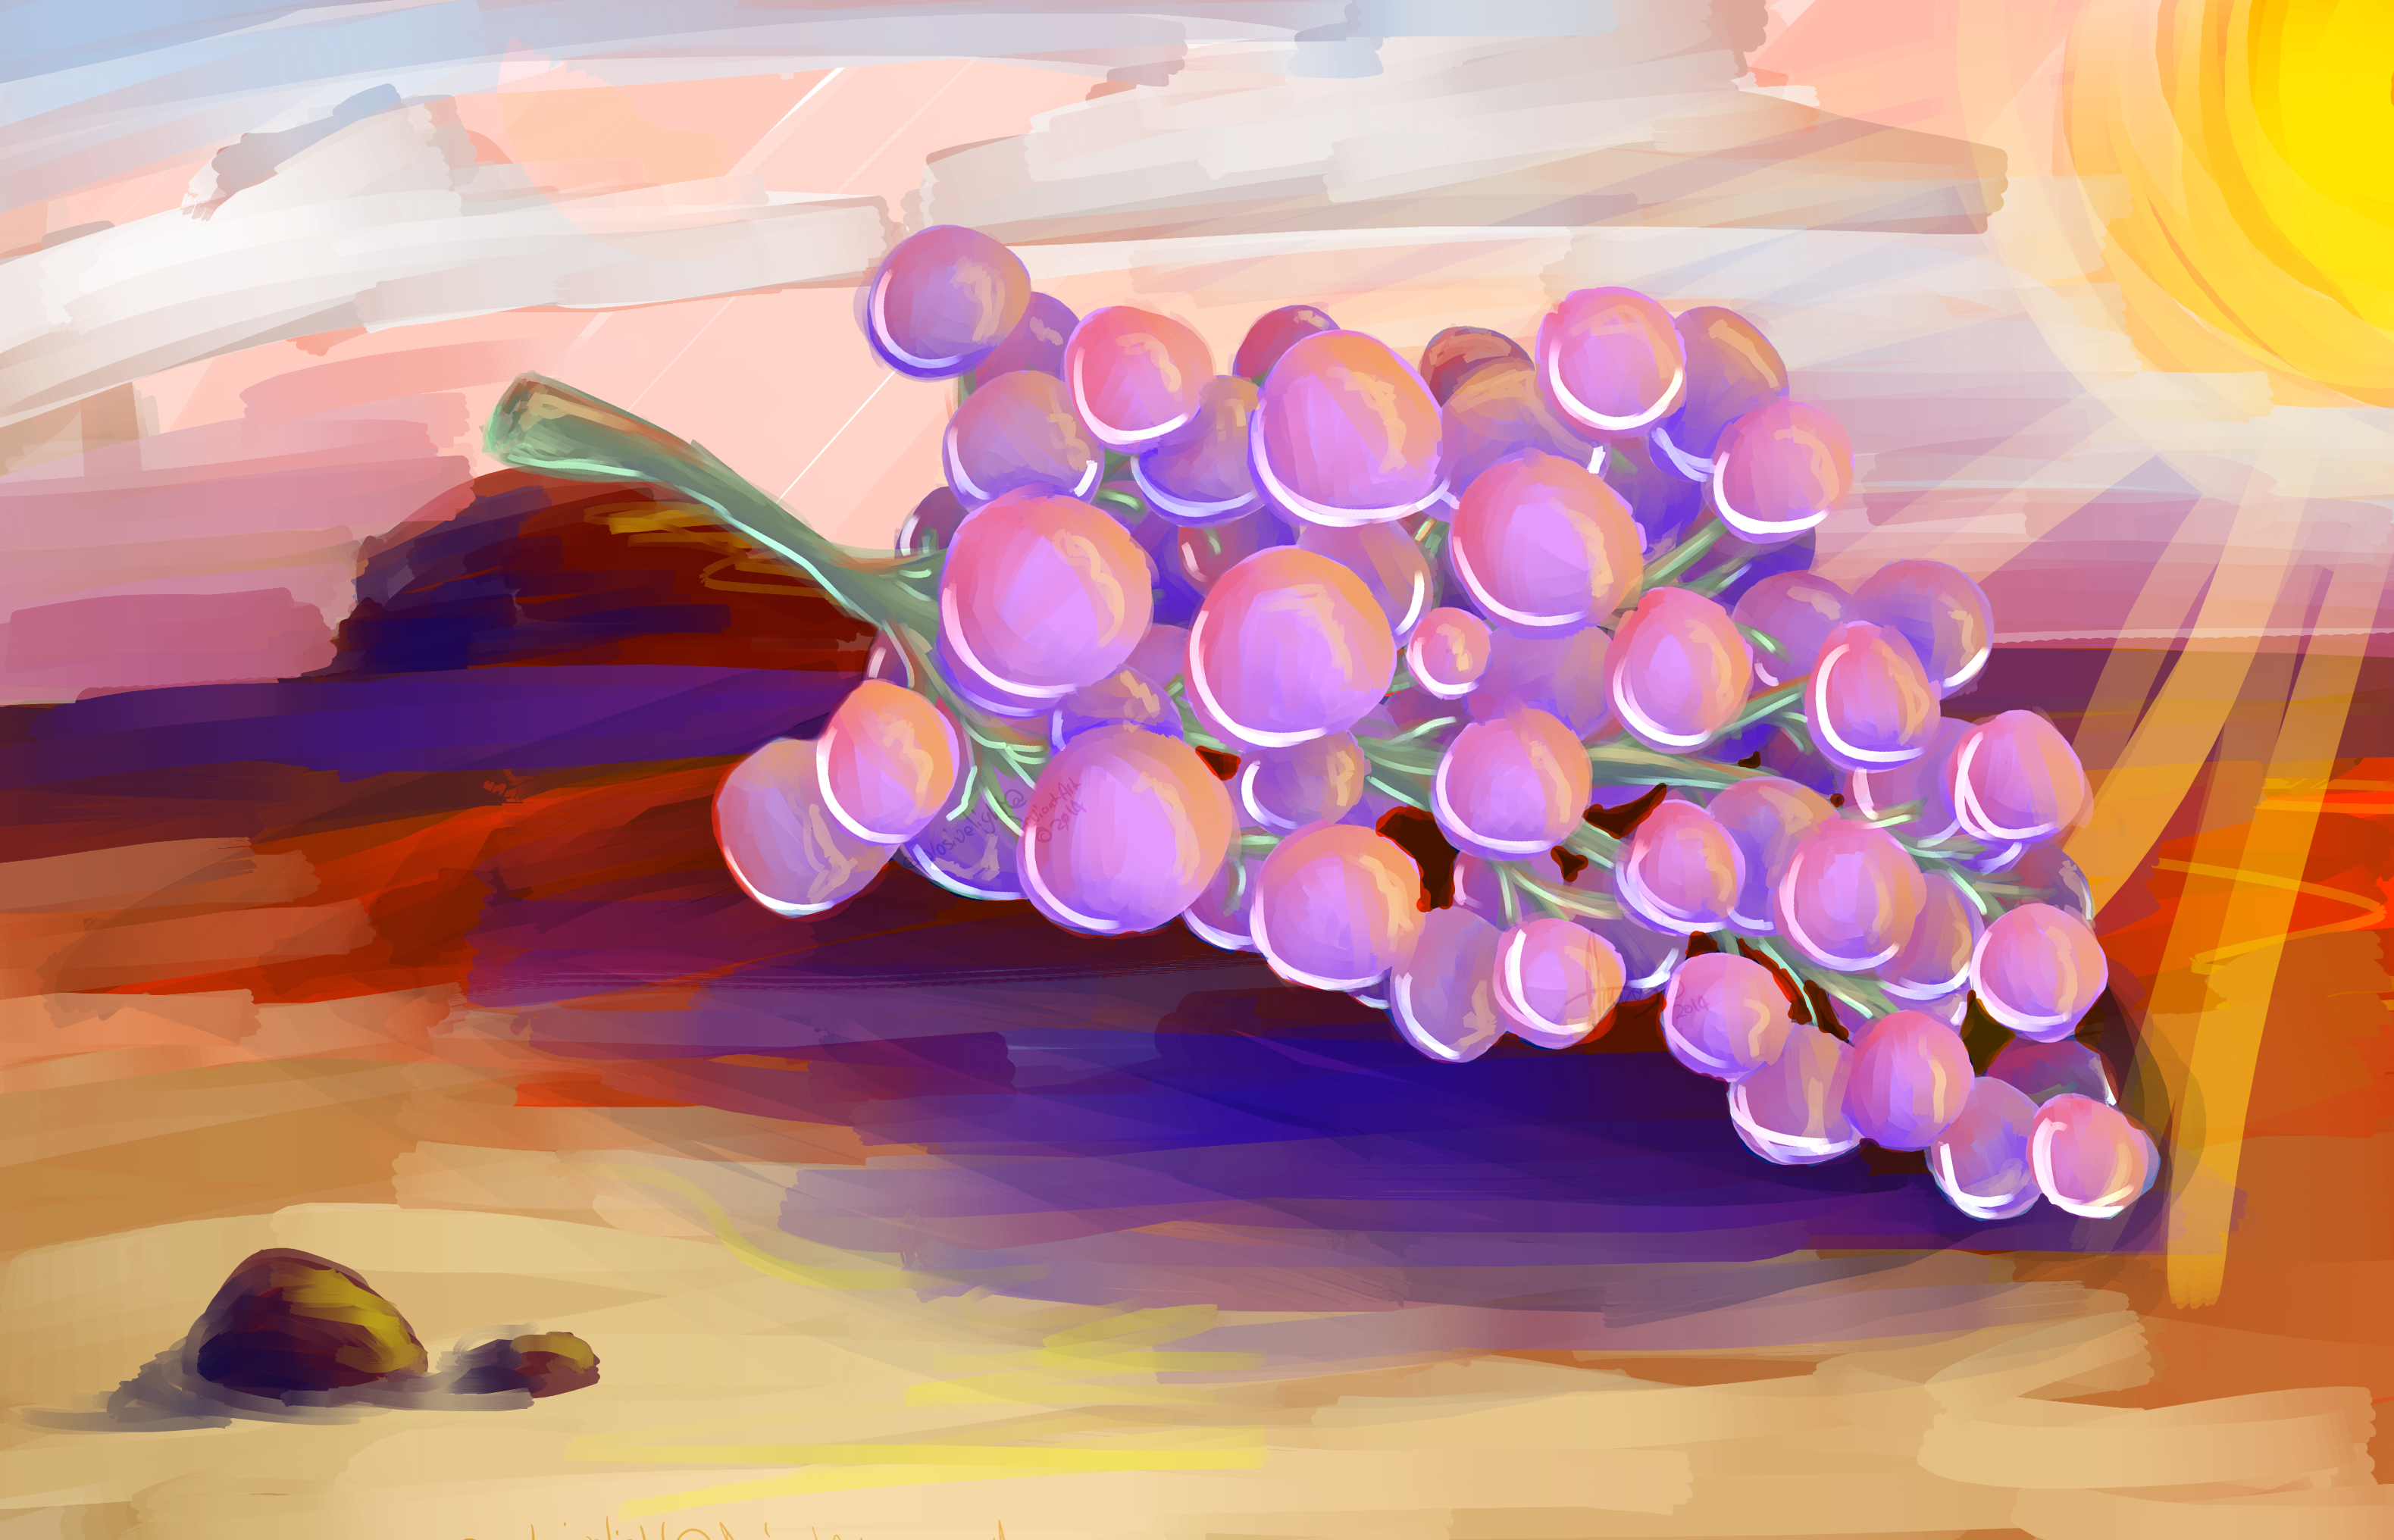 Desert Grapes by explosivelight